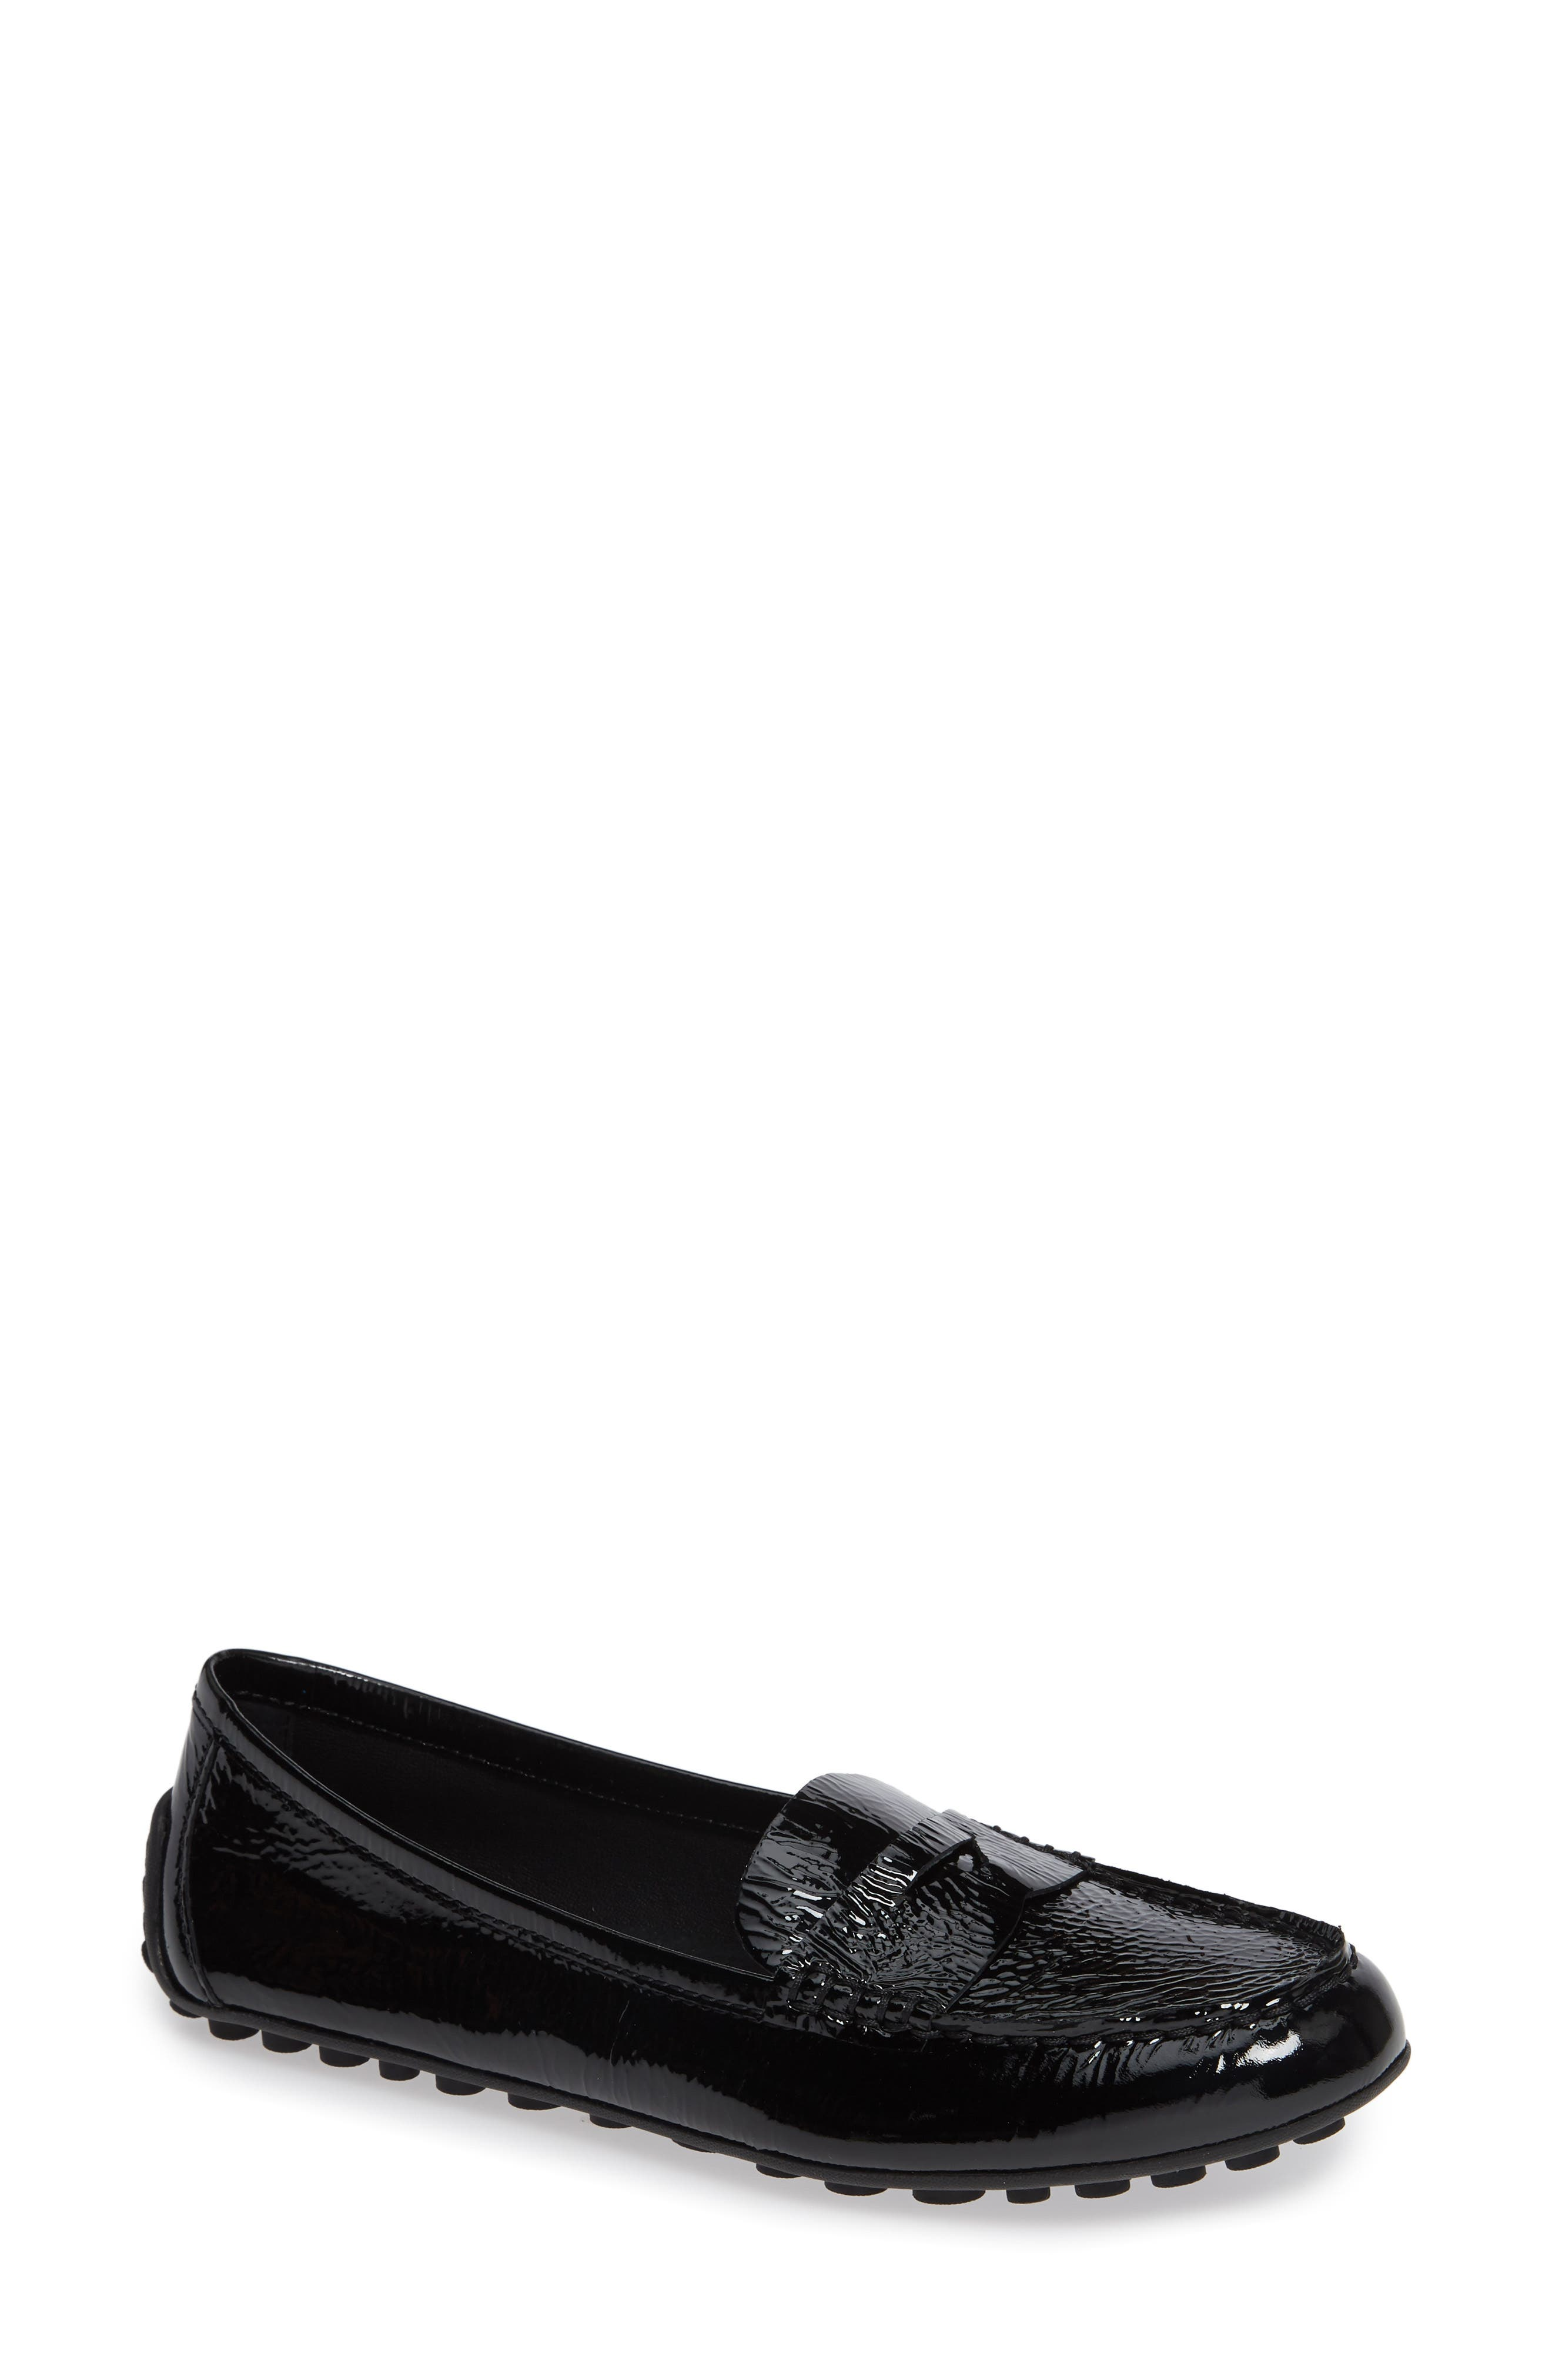 Malena Driving Loafer,                             Main thumbnail 1, color,                             BLACK PATENT LEATHER